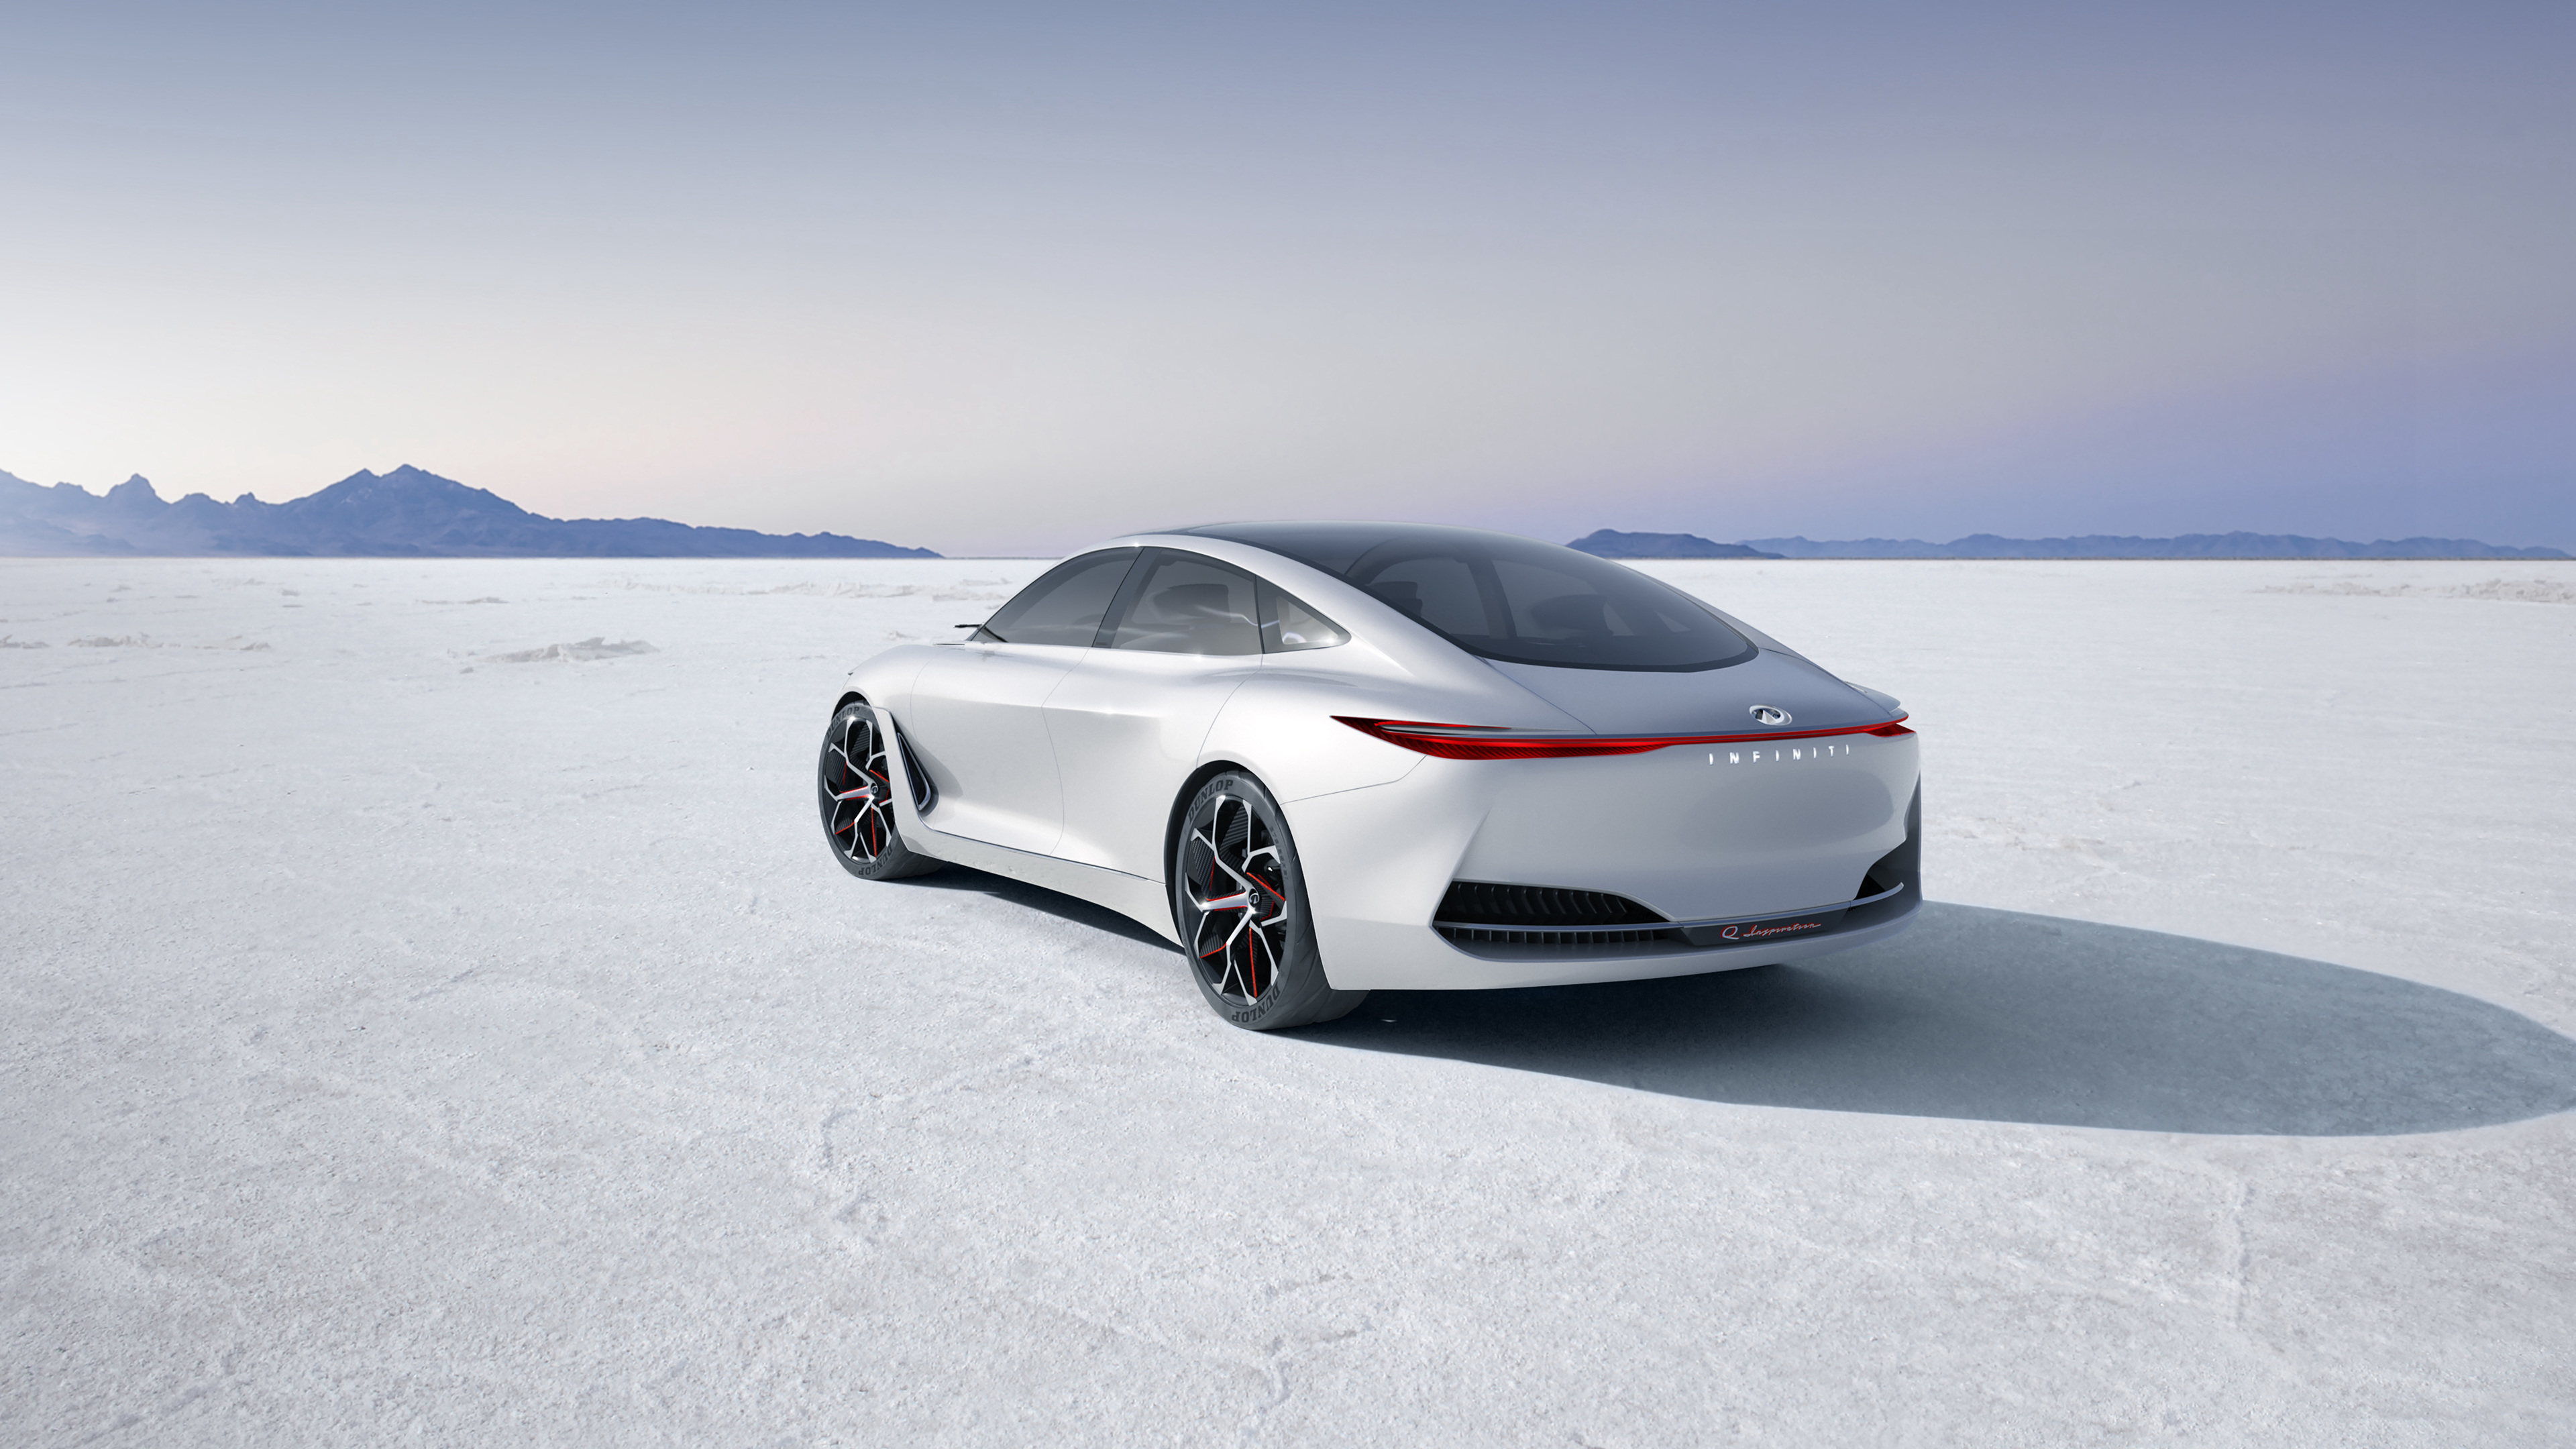 infiniti q inspiration concept car rear side 2018 1539109122 - Infiniti Q Inspiration Concept Car Rear Side 2018 - infiniti wallpapers, infiniti q inspiration concept wallpapers, hd-wallpapers, concept cars wallpapers, cars wallpapers, 2018 cars wallpapers